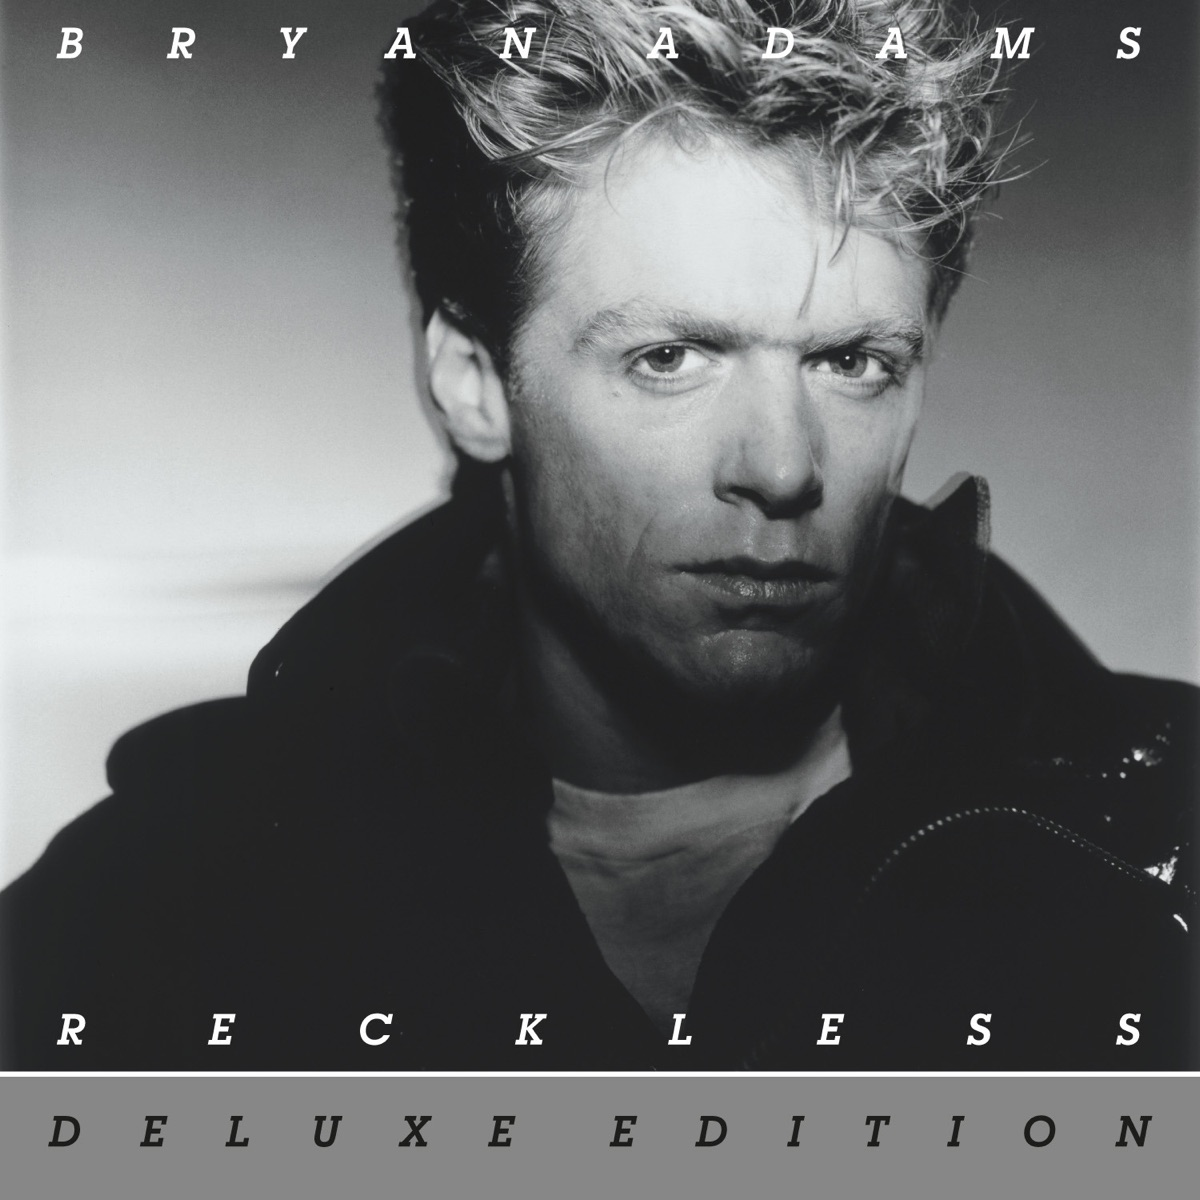 Reckless 30th Anniversary Deluxe Edition Bryan Adams CD cover